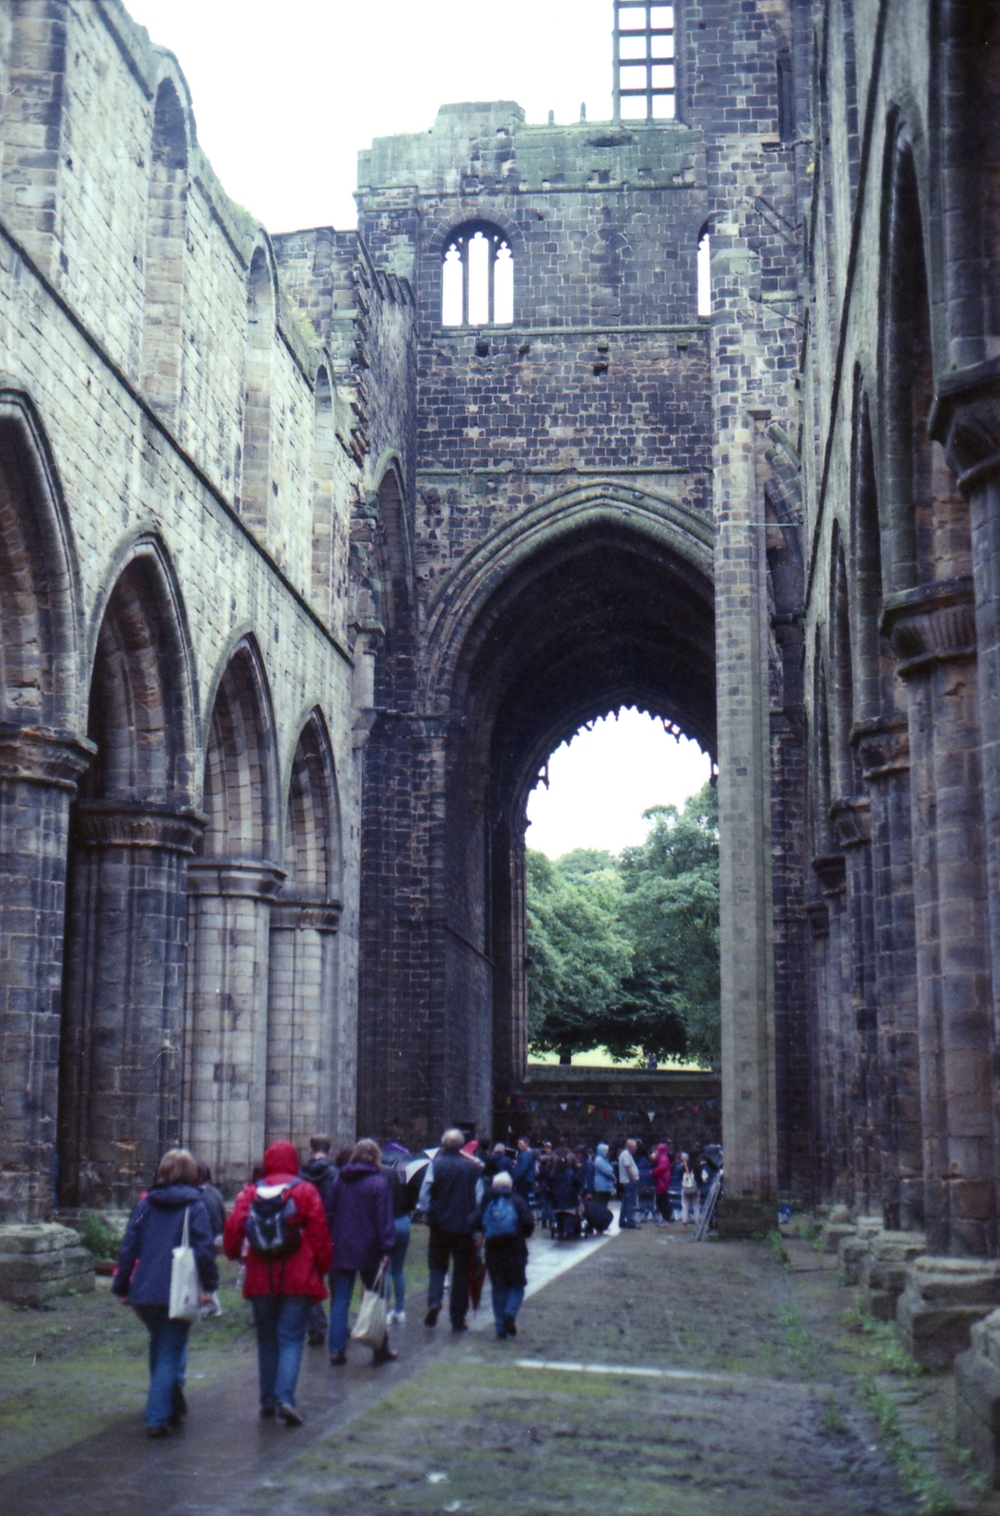 191/366 - Another rainy day but this time spent at the abbey as part of Kirkstall Festival